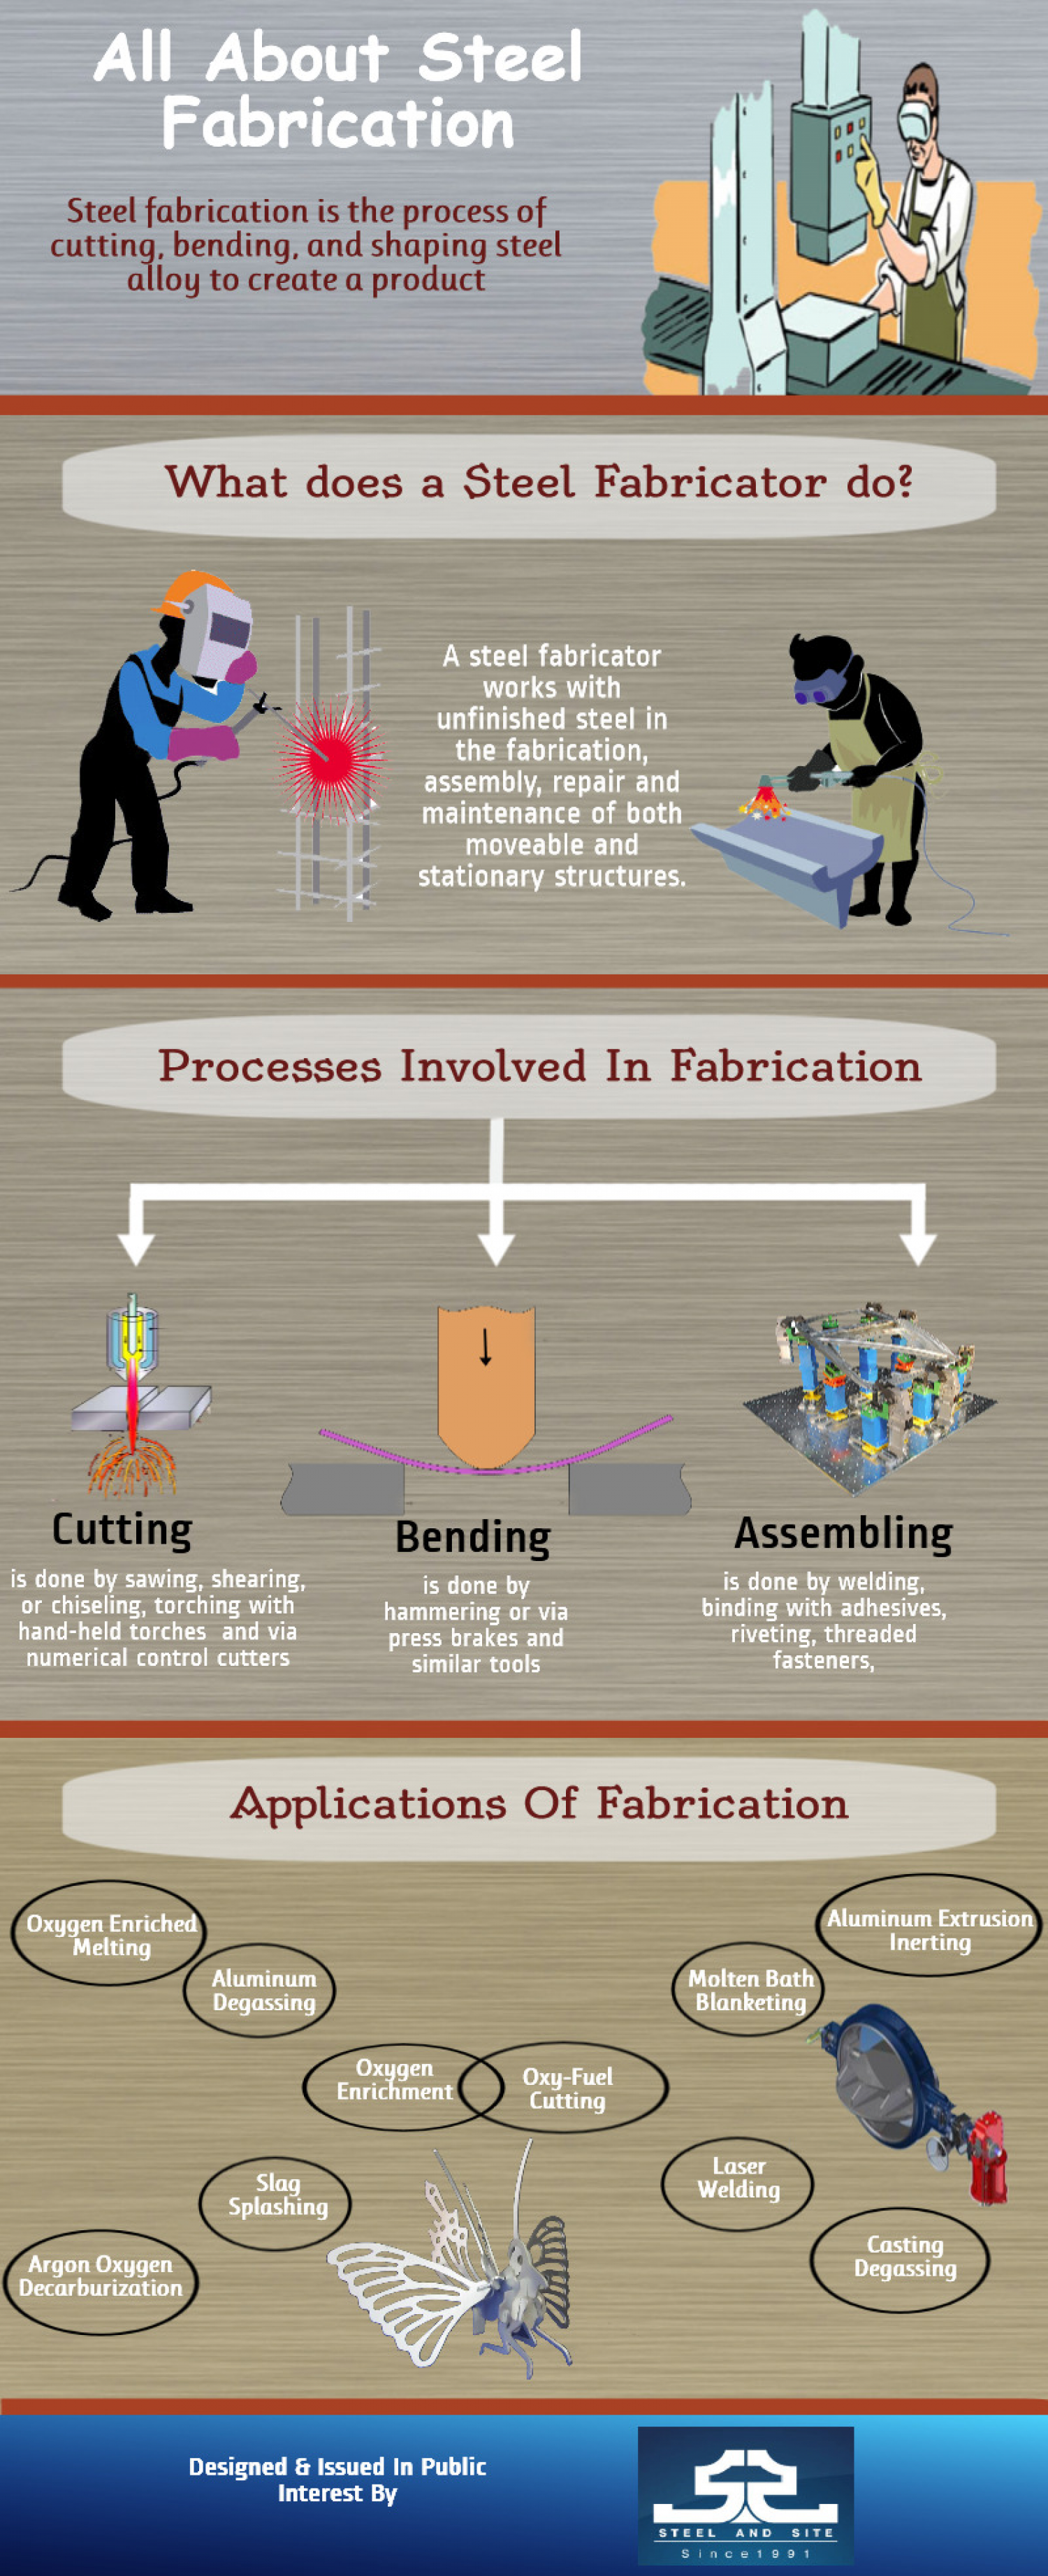 All About Steel Fabrication Infographic